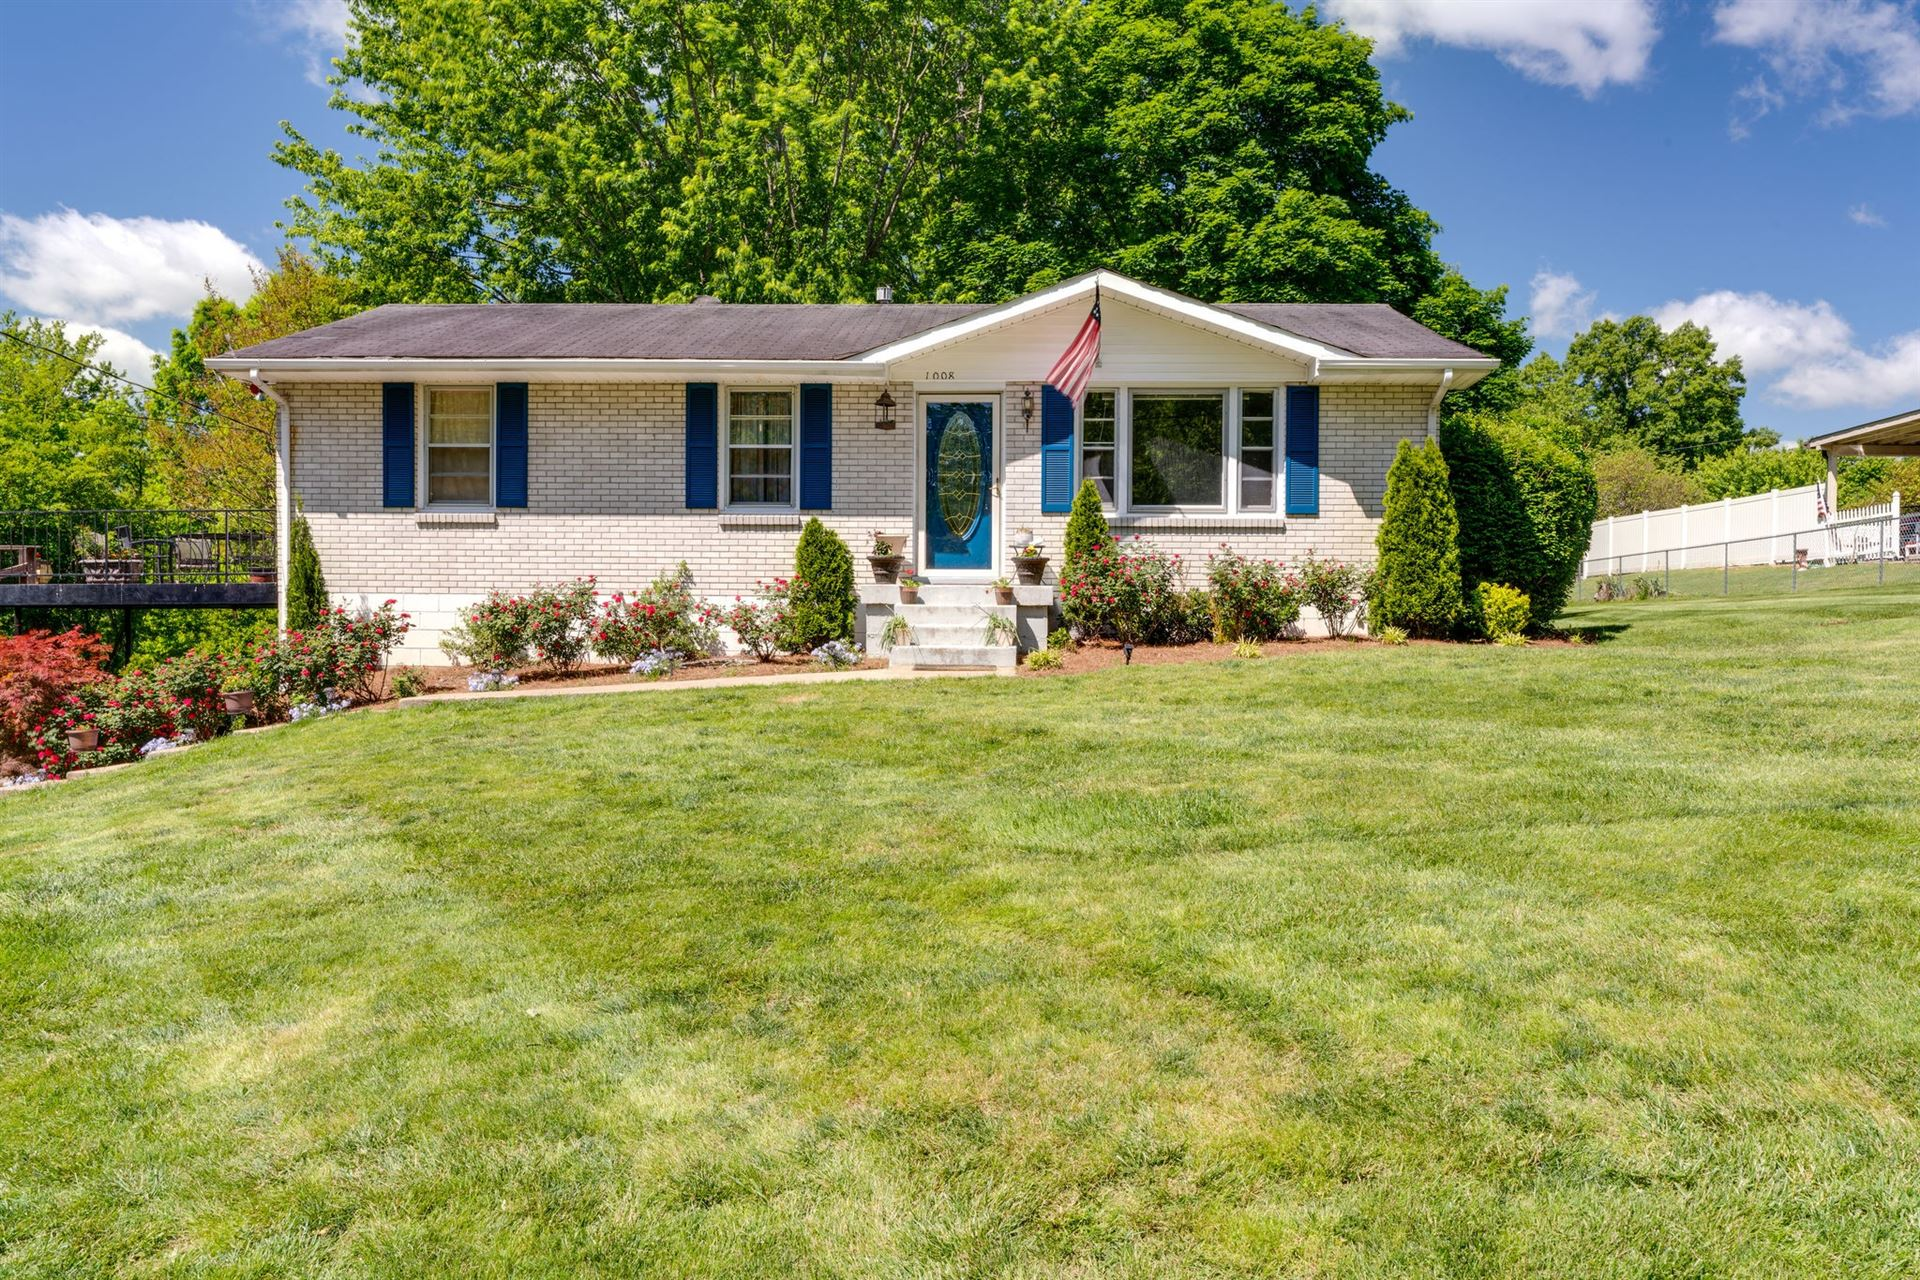 1008 Mayes Dr, Greenbrier, TN 37073 - MLS#: 2150794